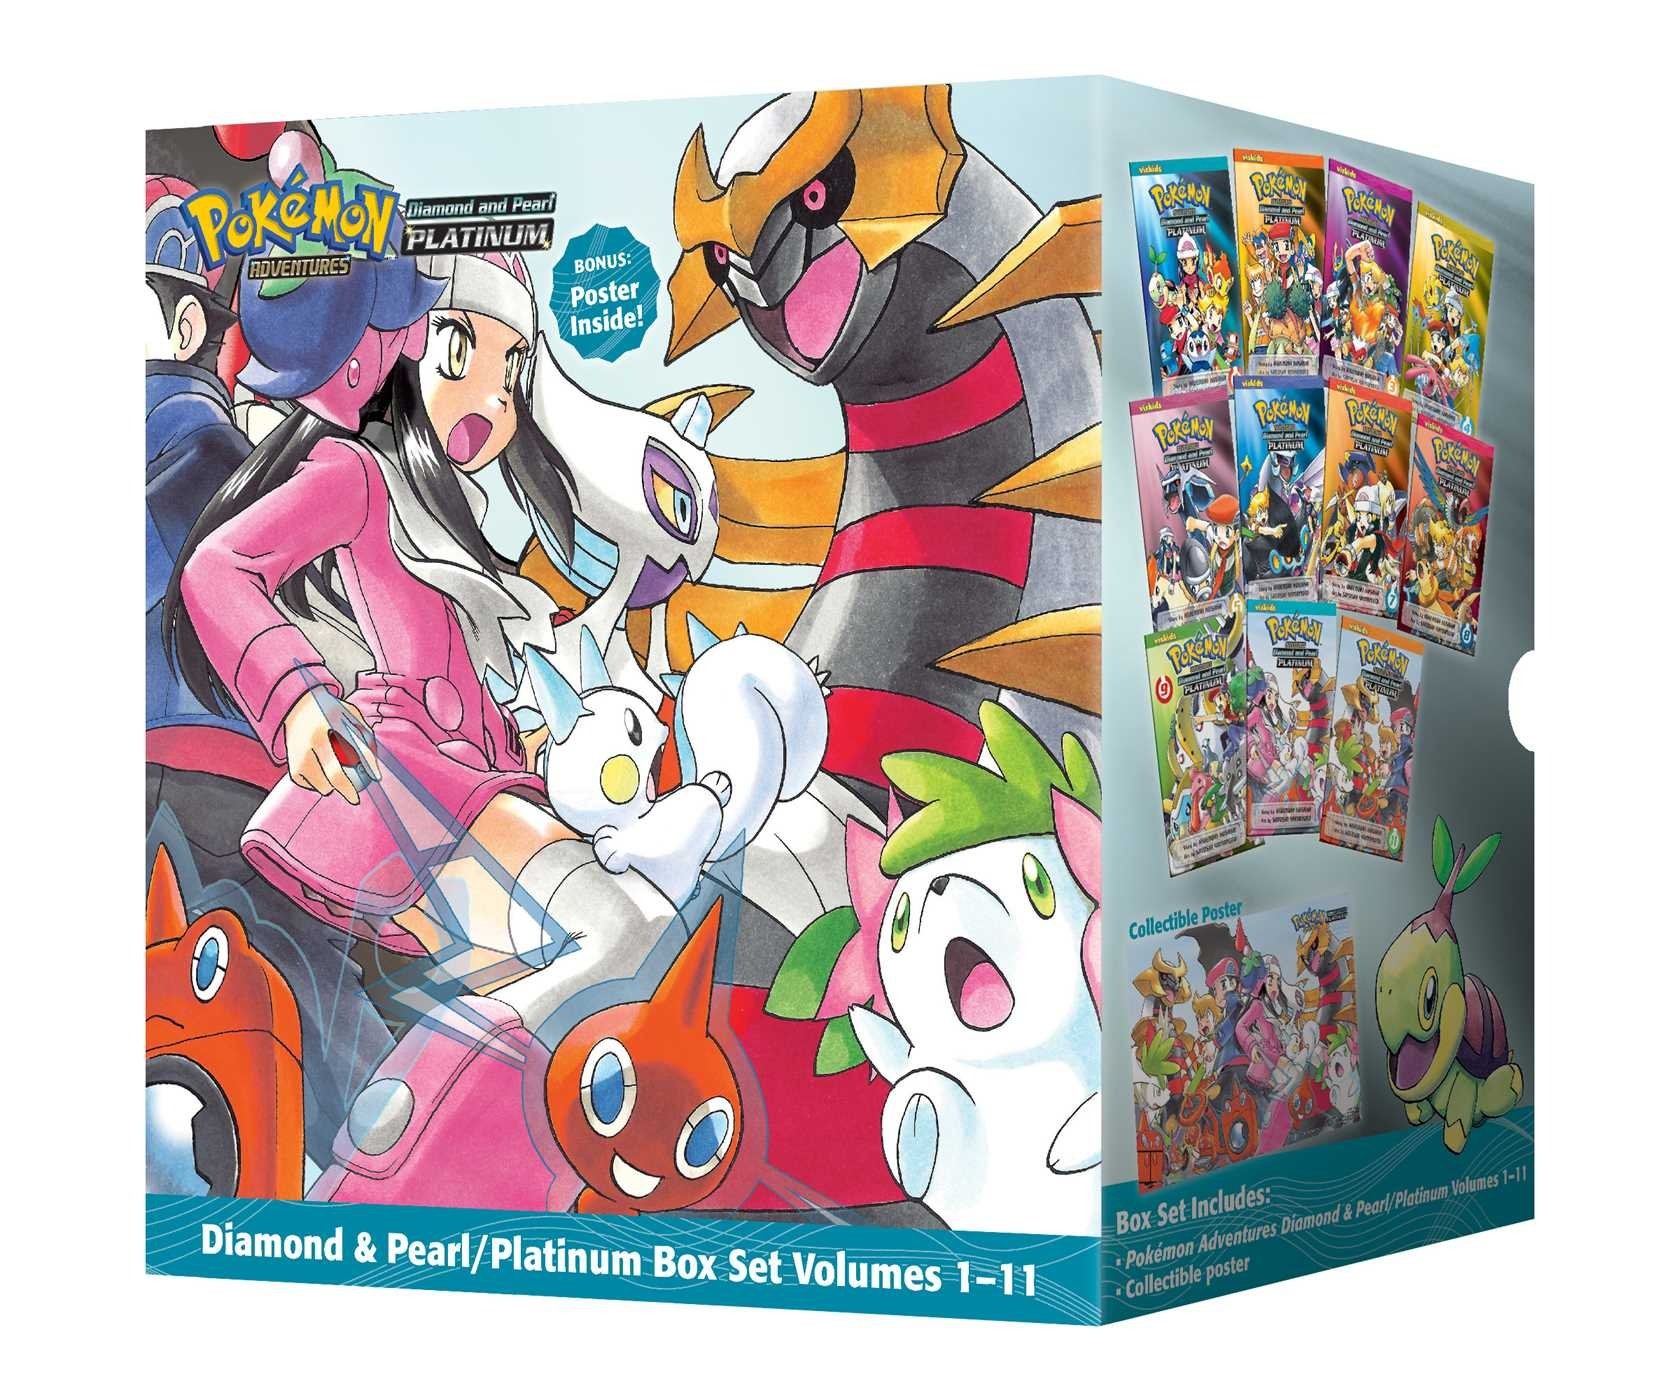 Pokemon Adventures Diamond & Pearl / Platinum Box Set (Pokemon Adventures Diamond and Pearl Platinum)